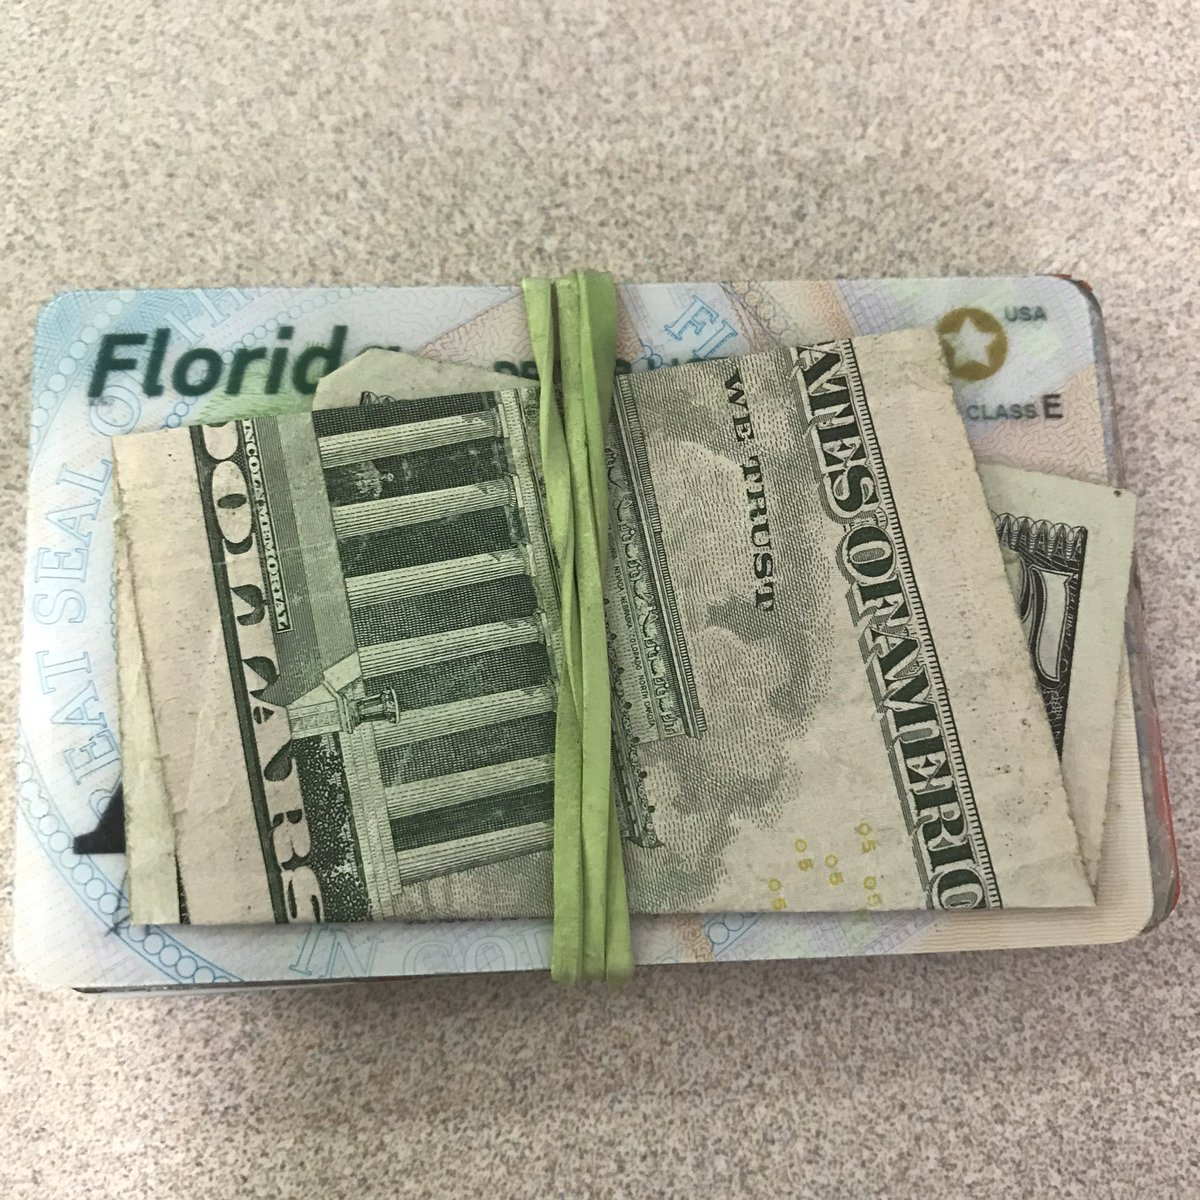 @Bob_Janke Rubber band wallet is the only wallet for me